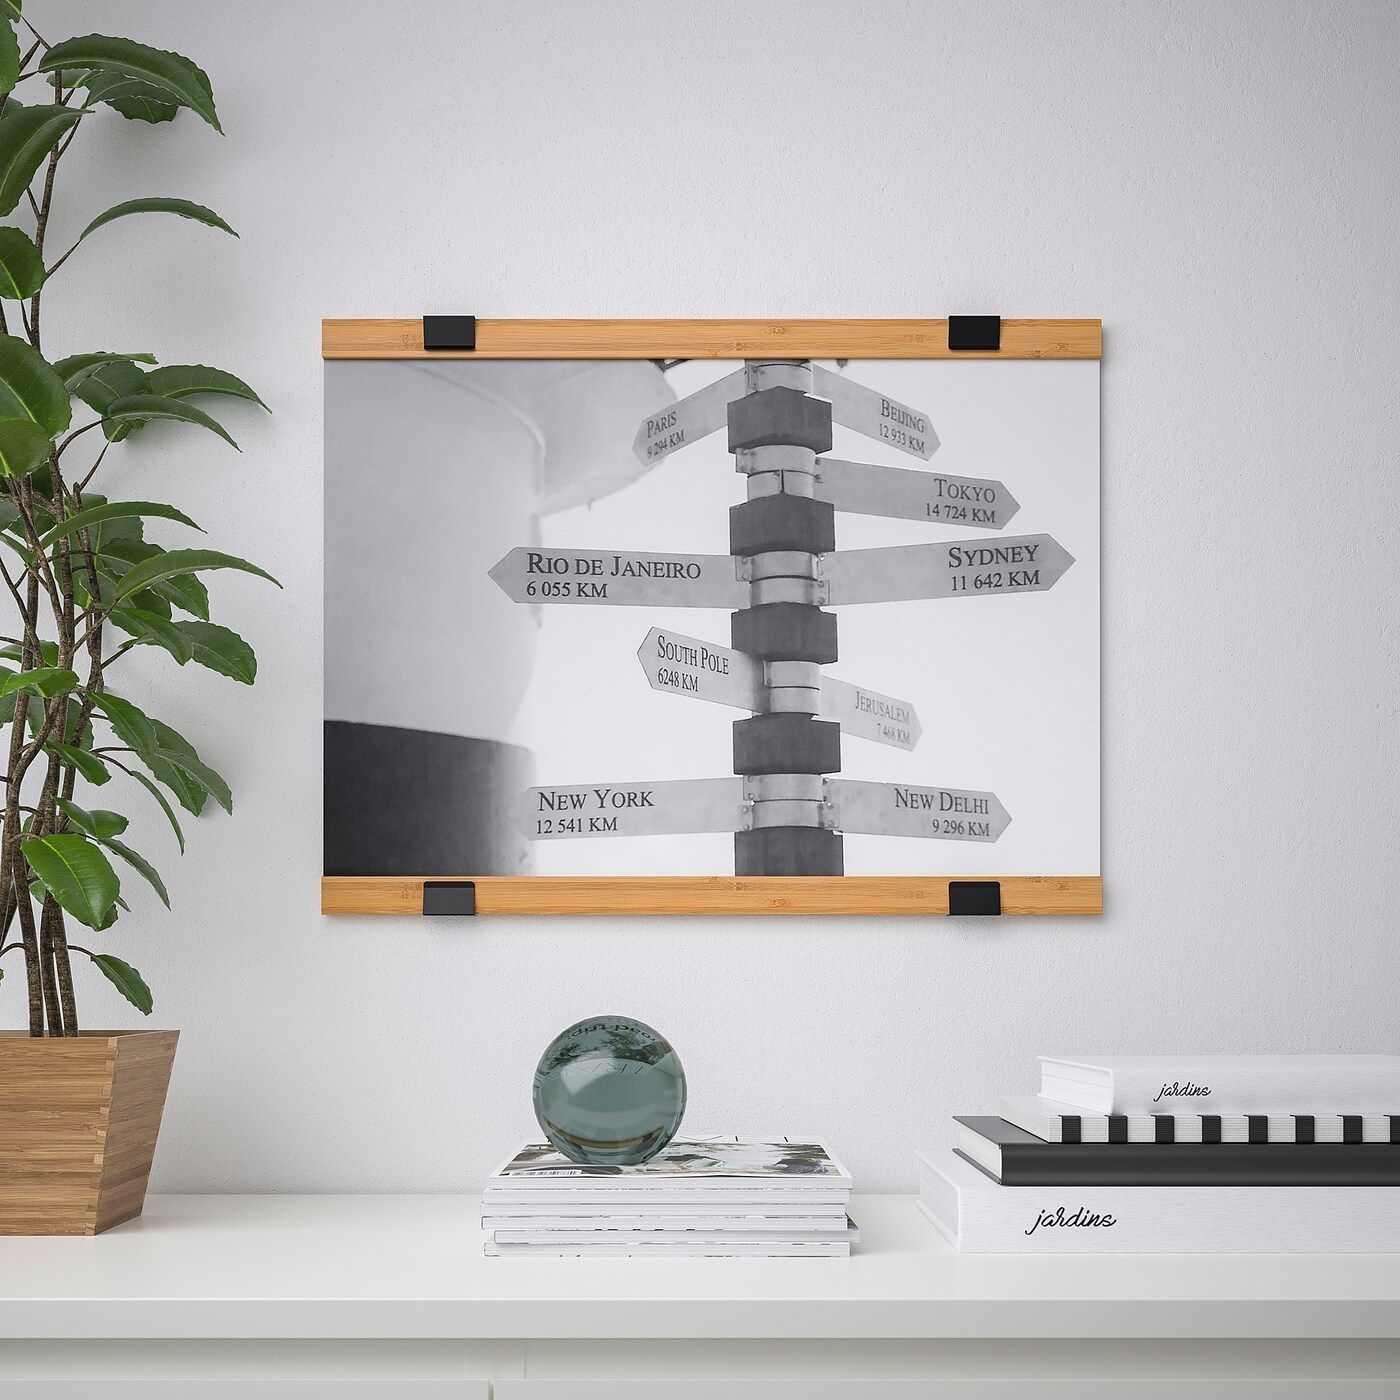 Visback Support Pour Poster Bambou Ikea Poster Hanger Ikea Ikea Catalog